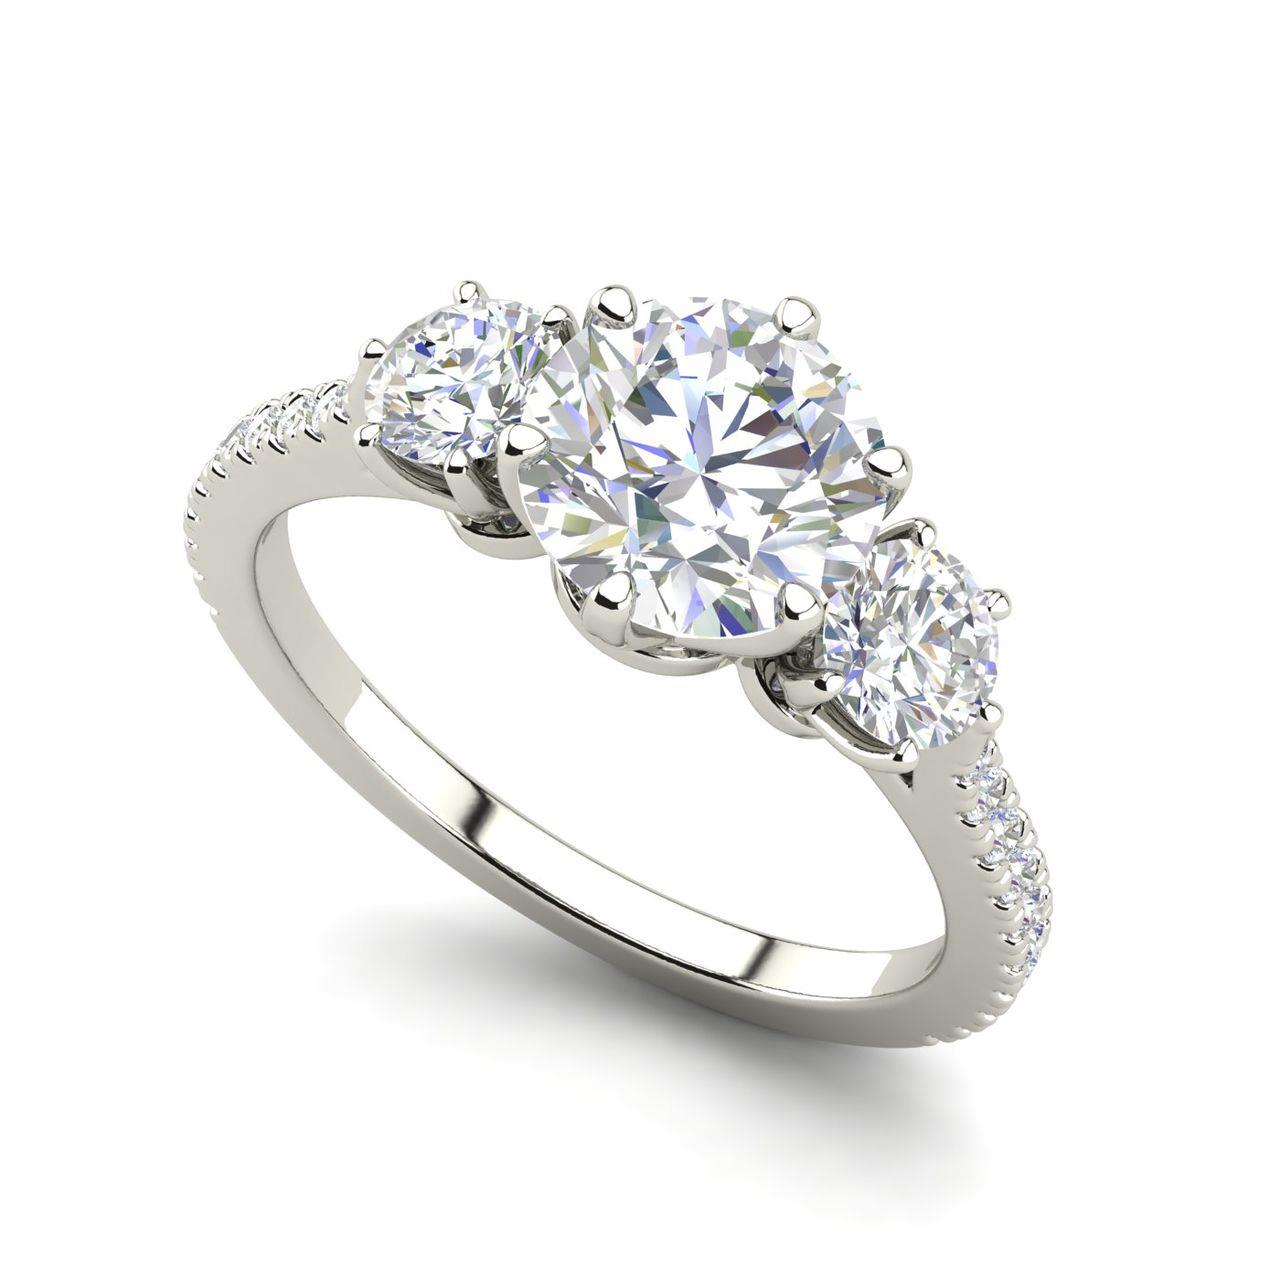 Pave 3 Stone 1.25 Carat Round Cut Diamond Engagement Ring